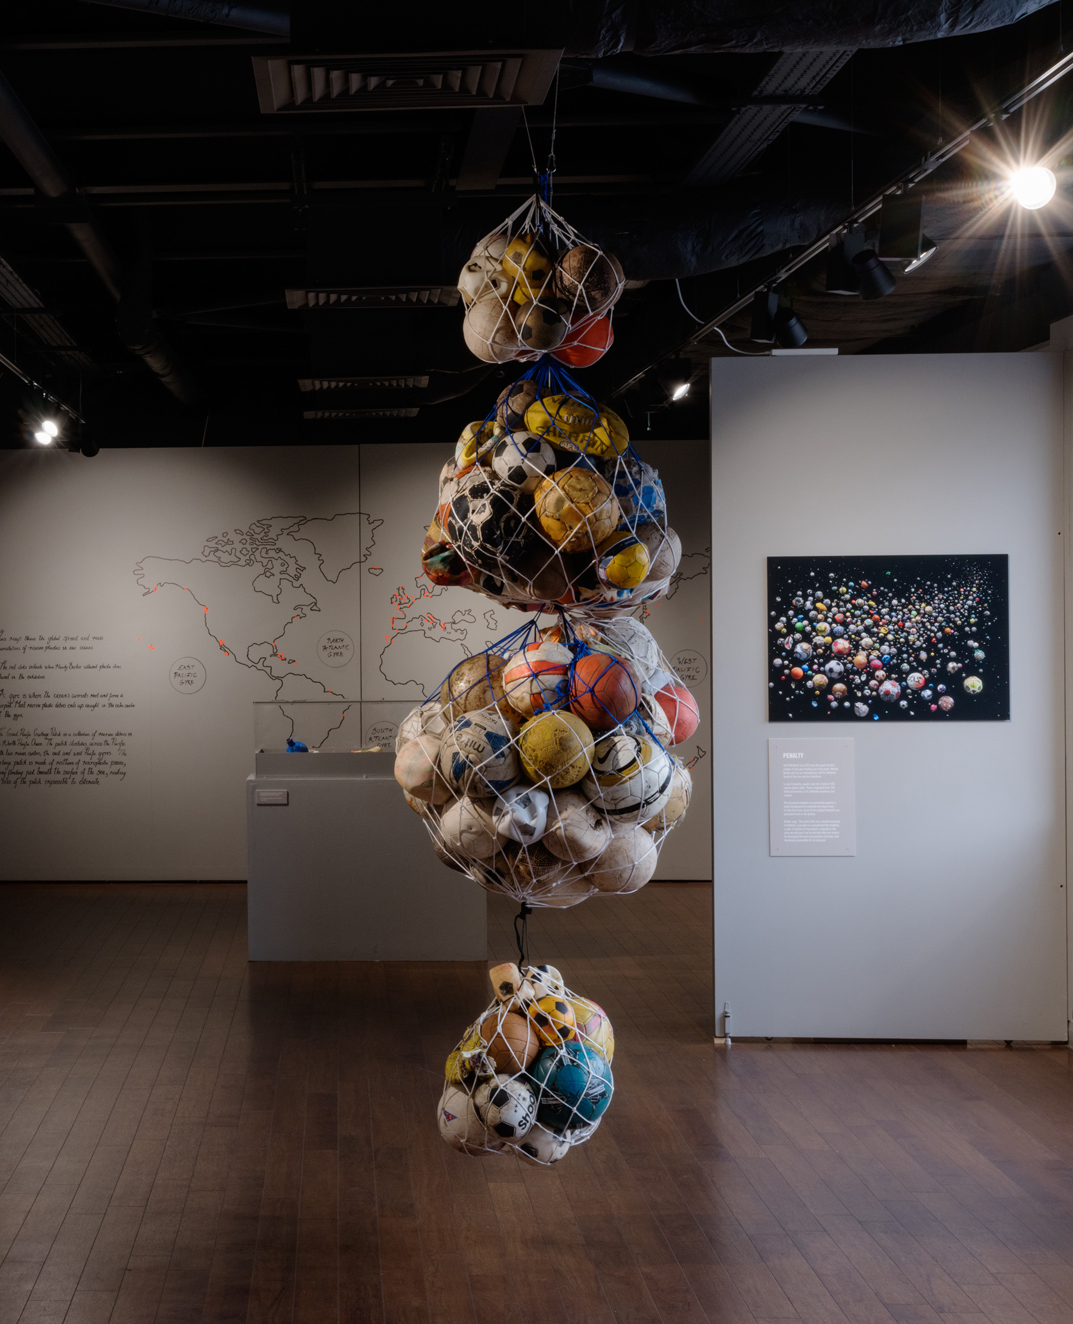 Installation of Our Plastic ocean by Mandy Barker at Waterside Arts, Sale